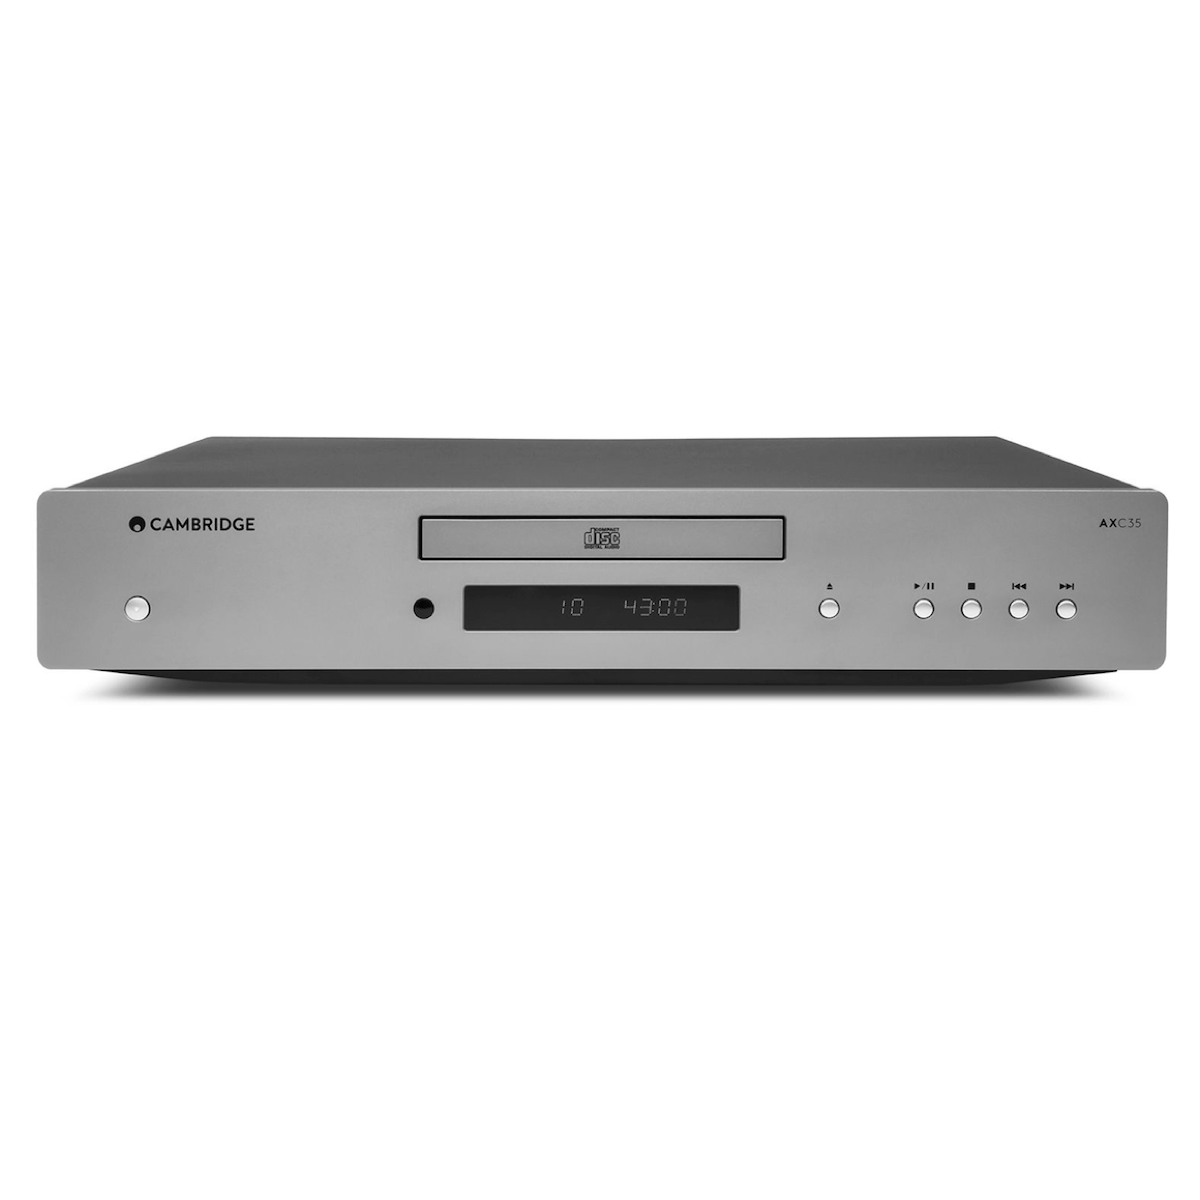 Cambridge Audio AX-C35 - CD player, Cambridge Audio, Digital players & streamers - AVStore.in